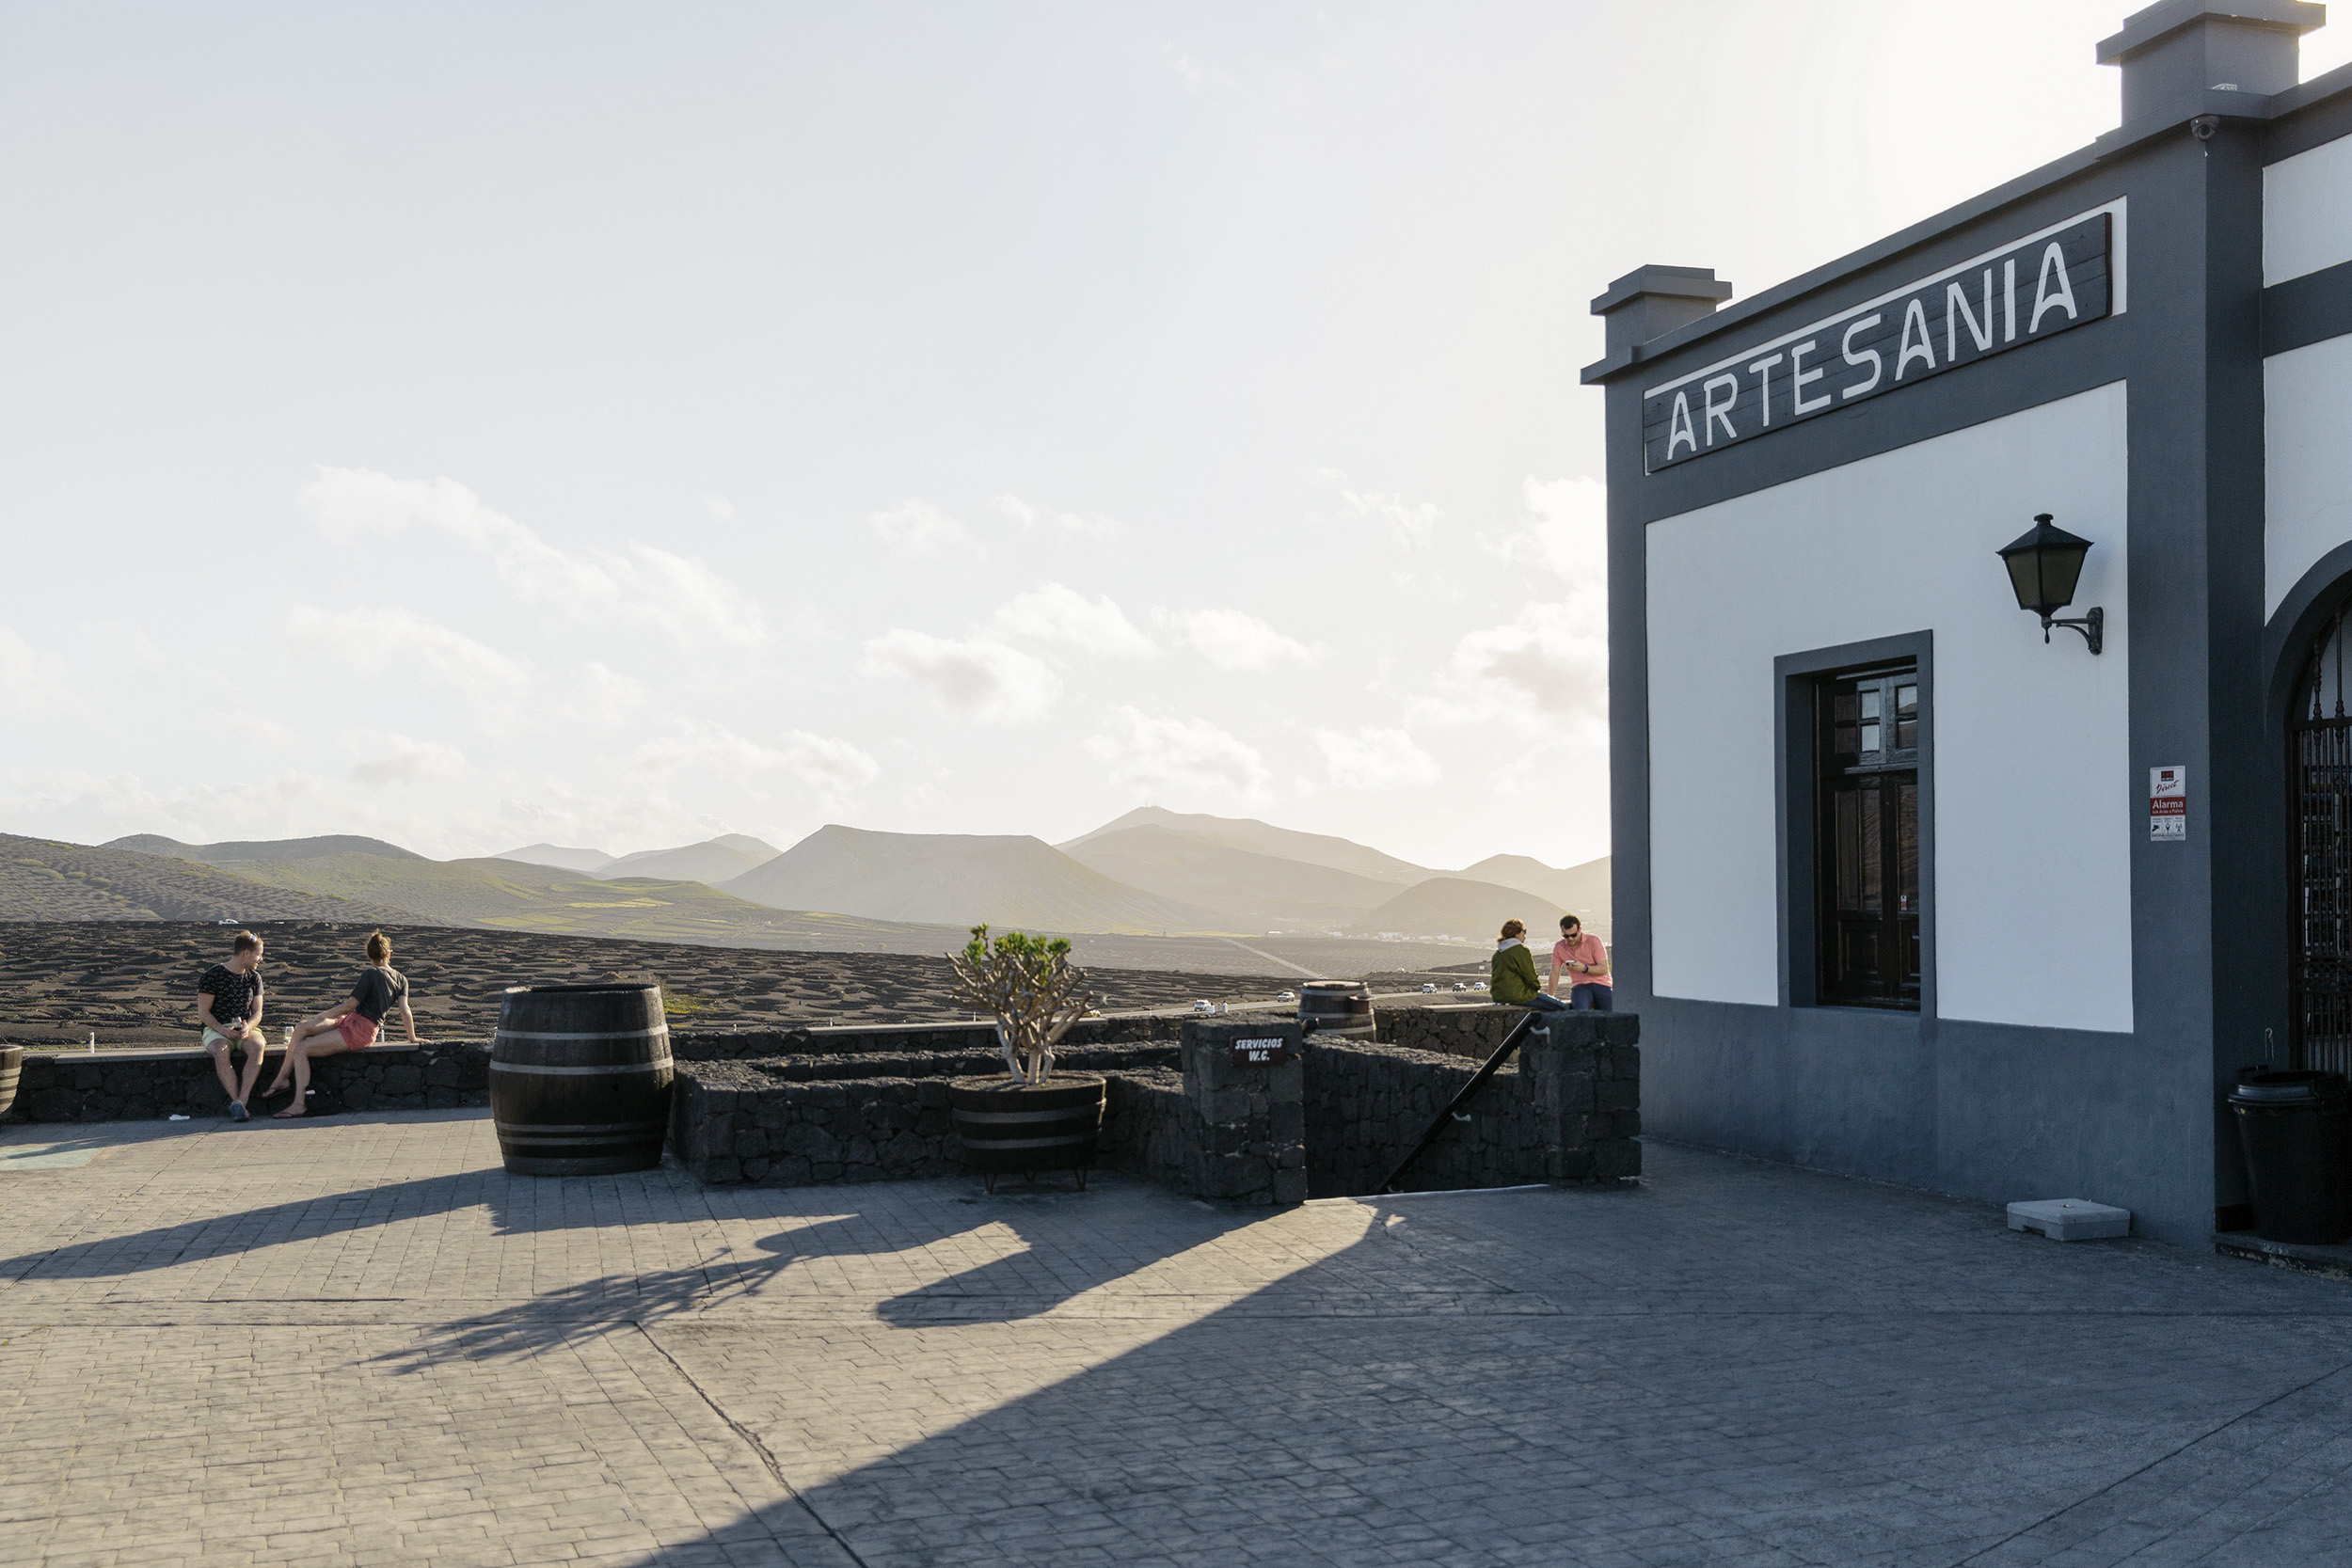 People enjoy La Geria winery in Lanzarote, Canary Islands, by Rebecca Stumpf RebeccaStumpf.Food.Travel.Lifestyle.Denver.Boulder.Colorado.Photographer